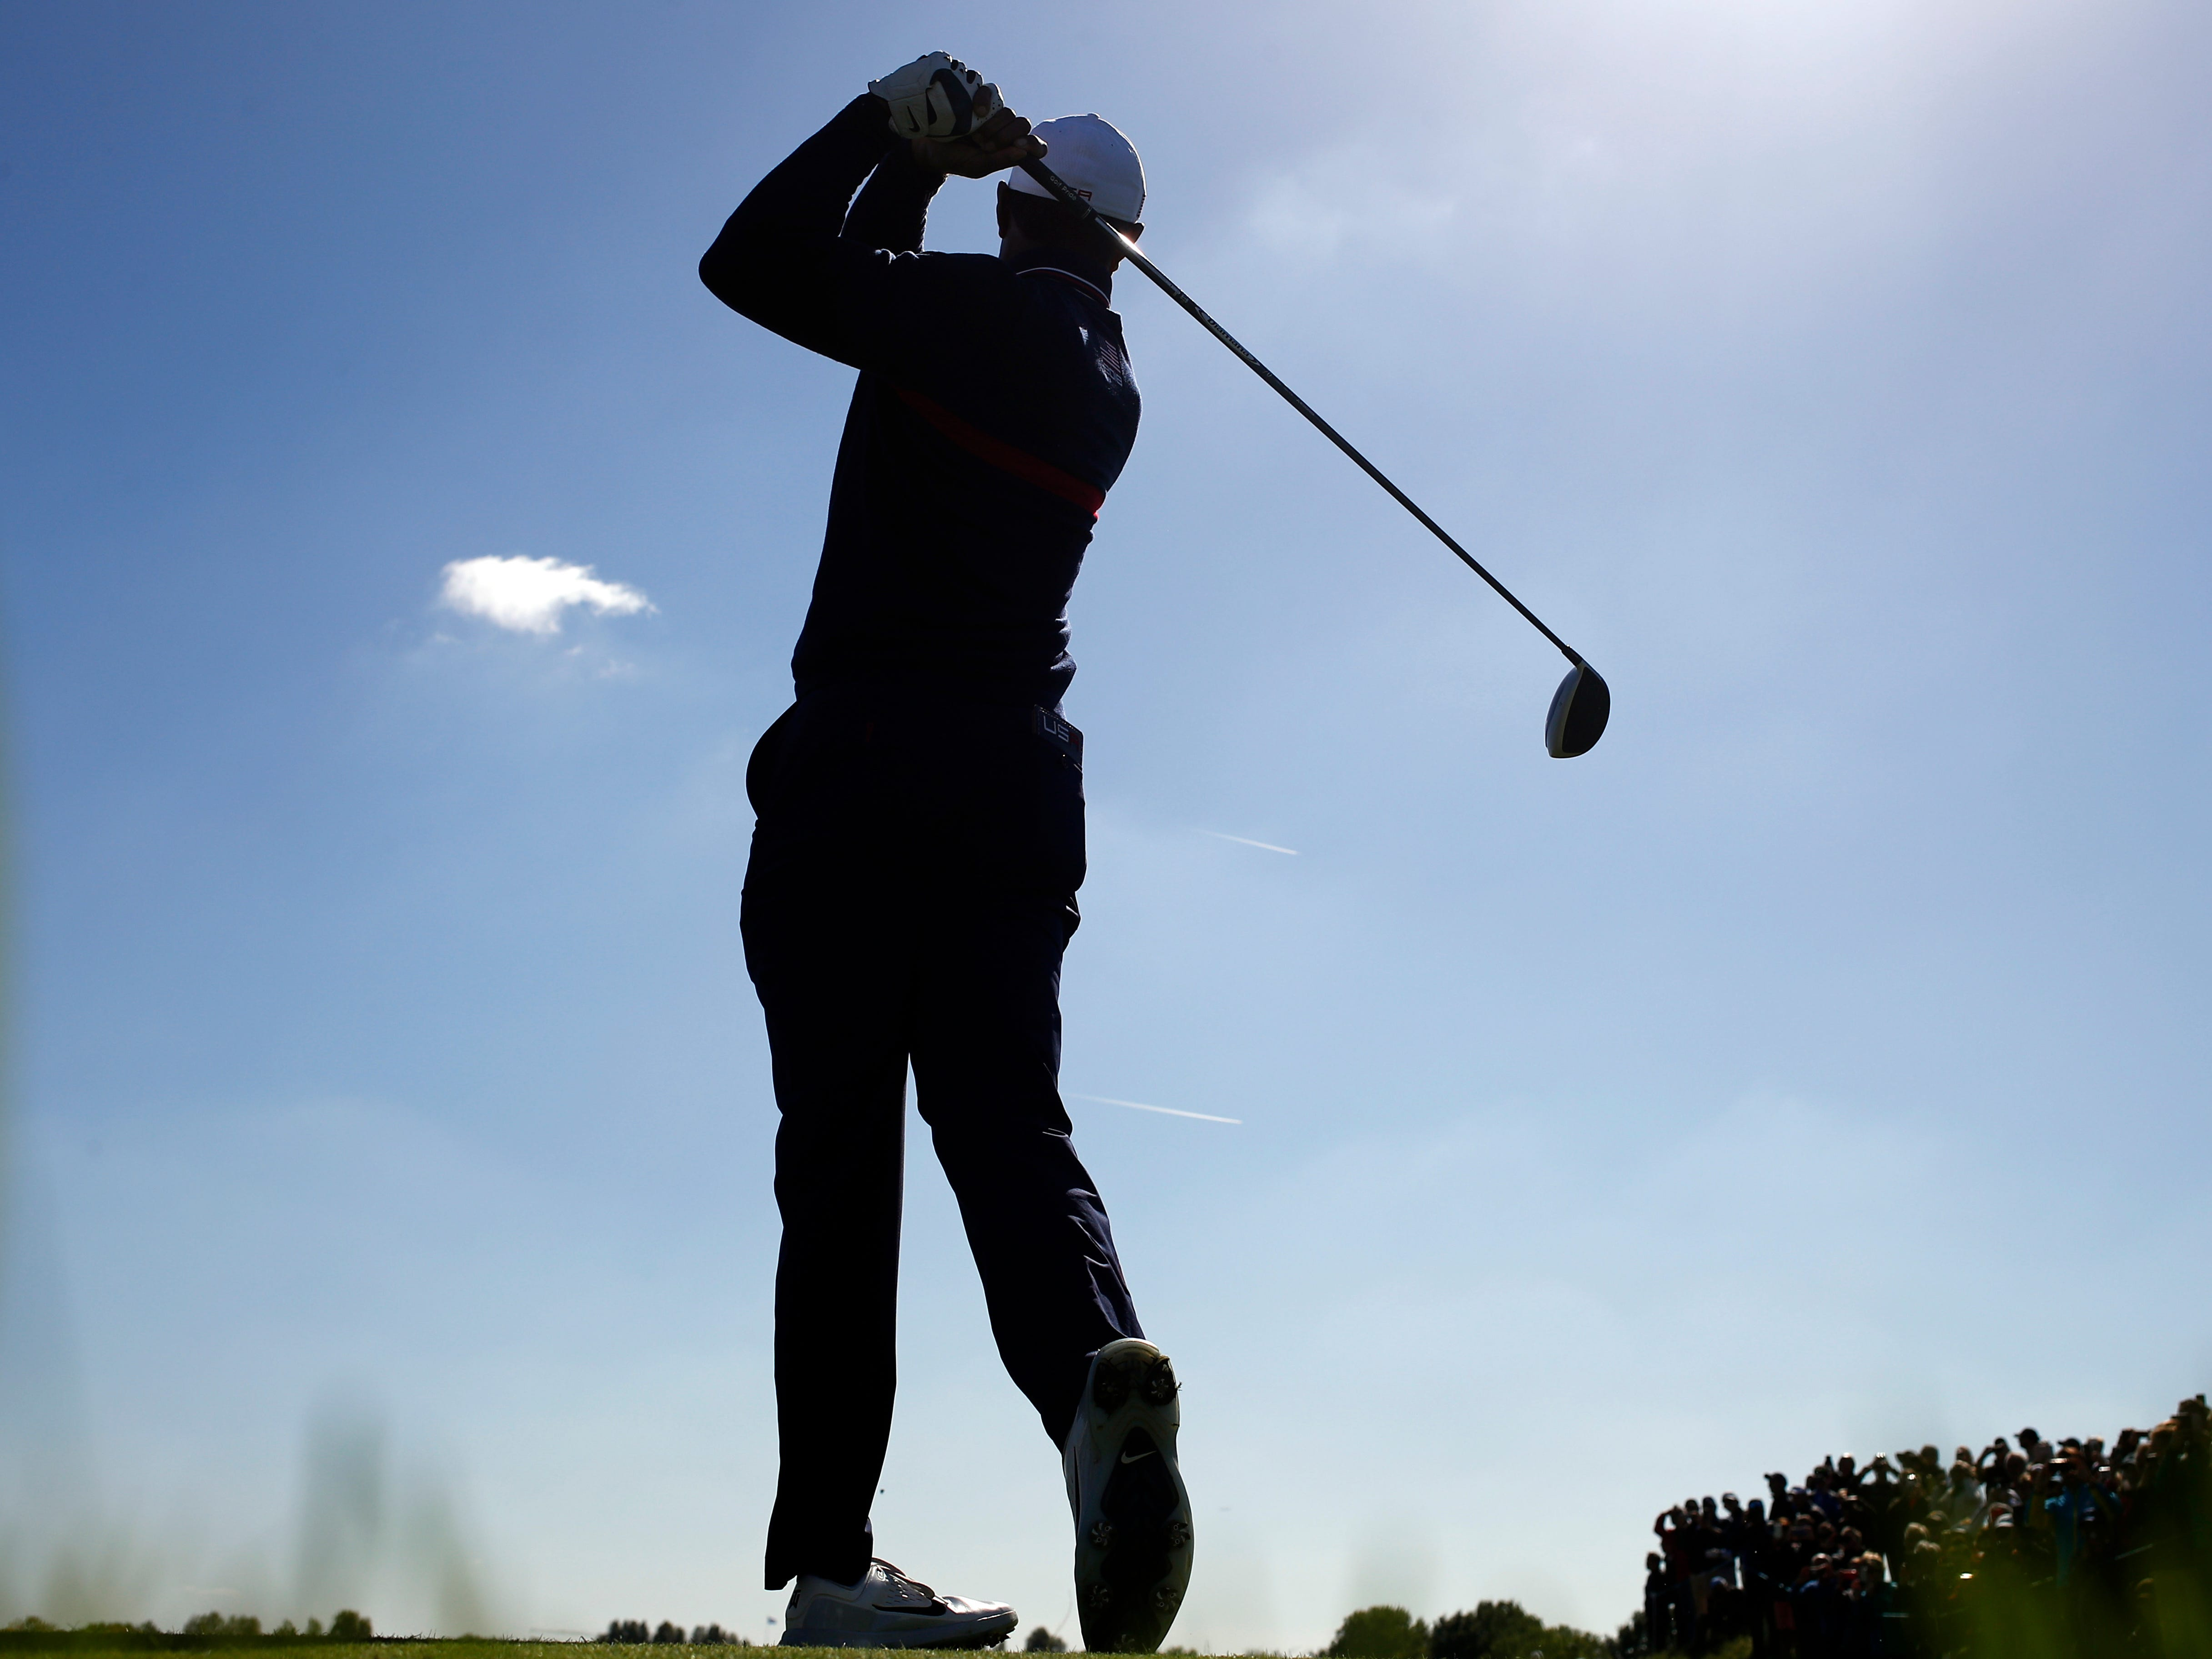 Tiger Woods hits his drive on the 13th hole during a practice session at Le Golf National.